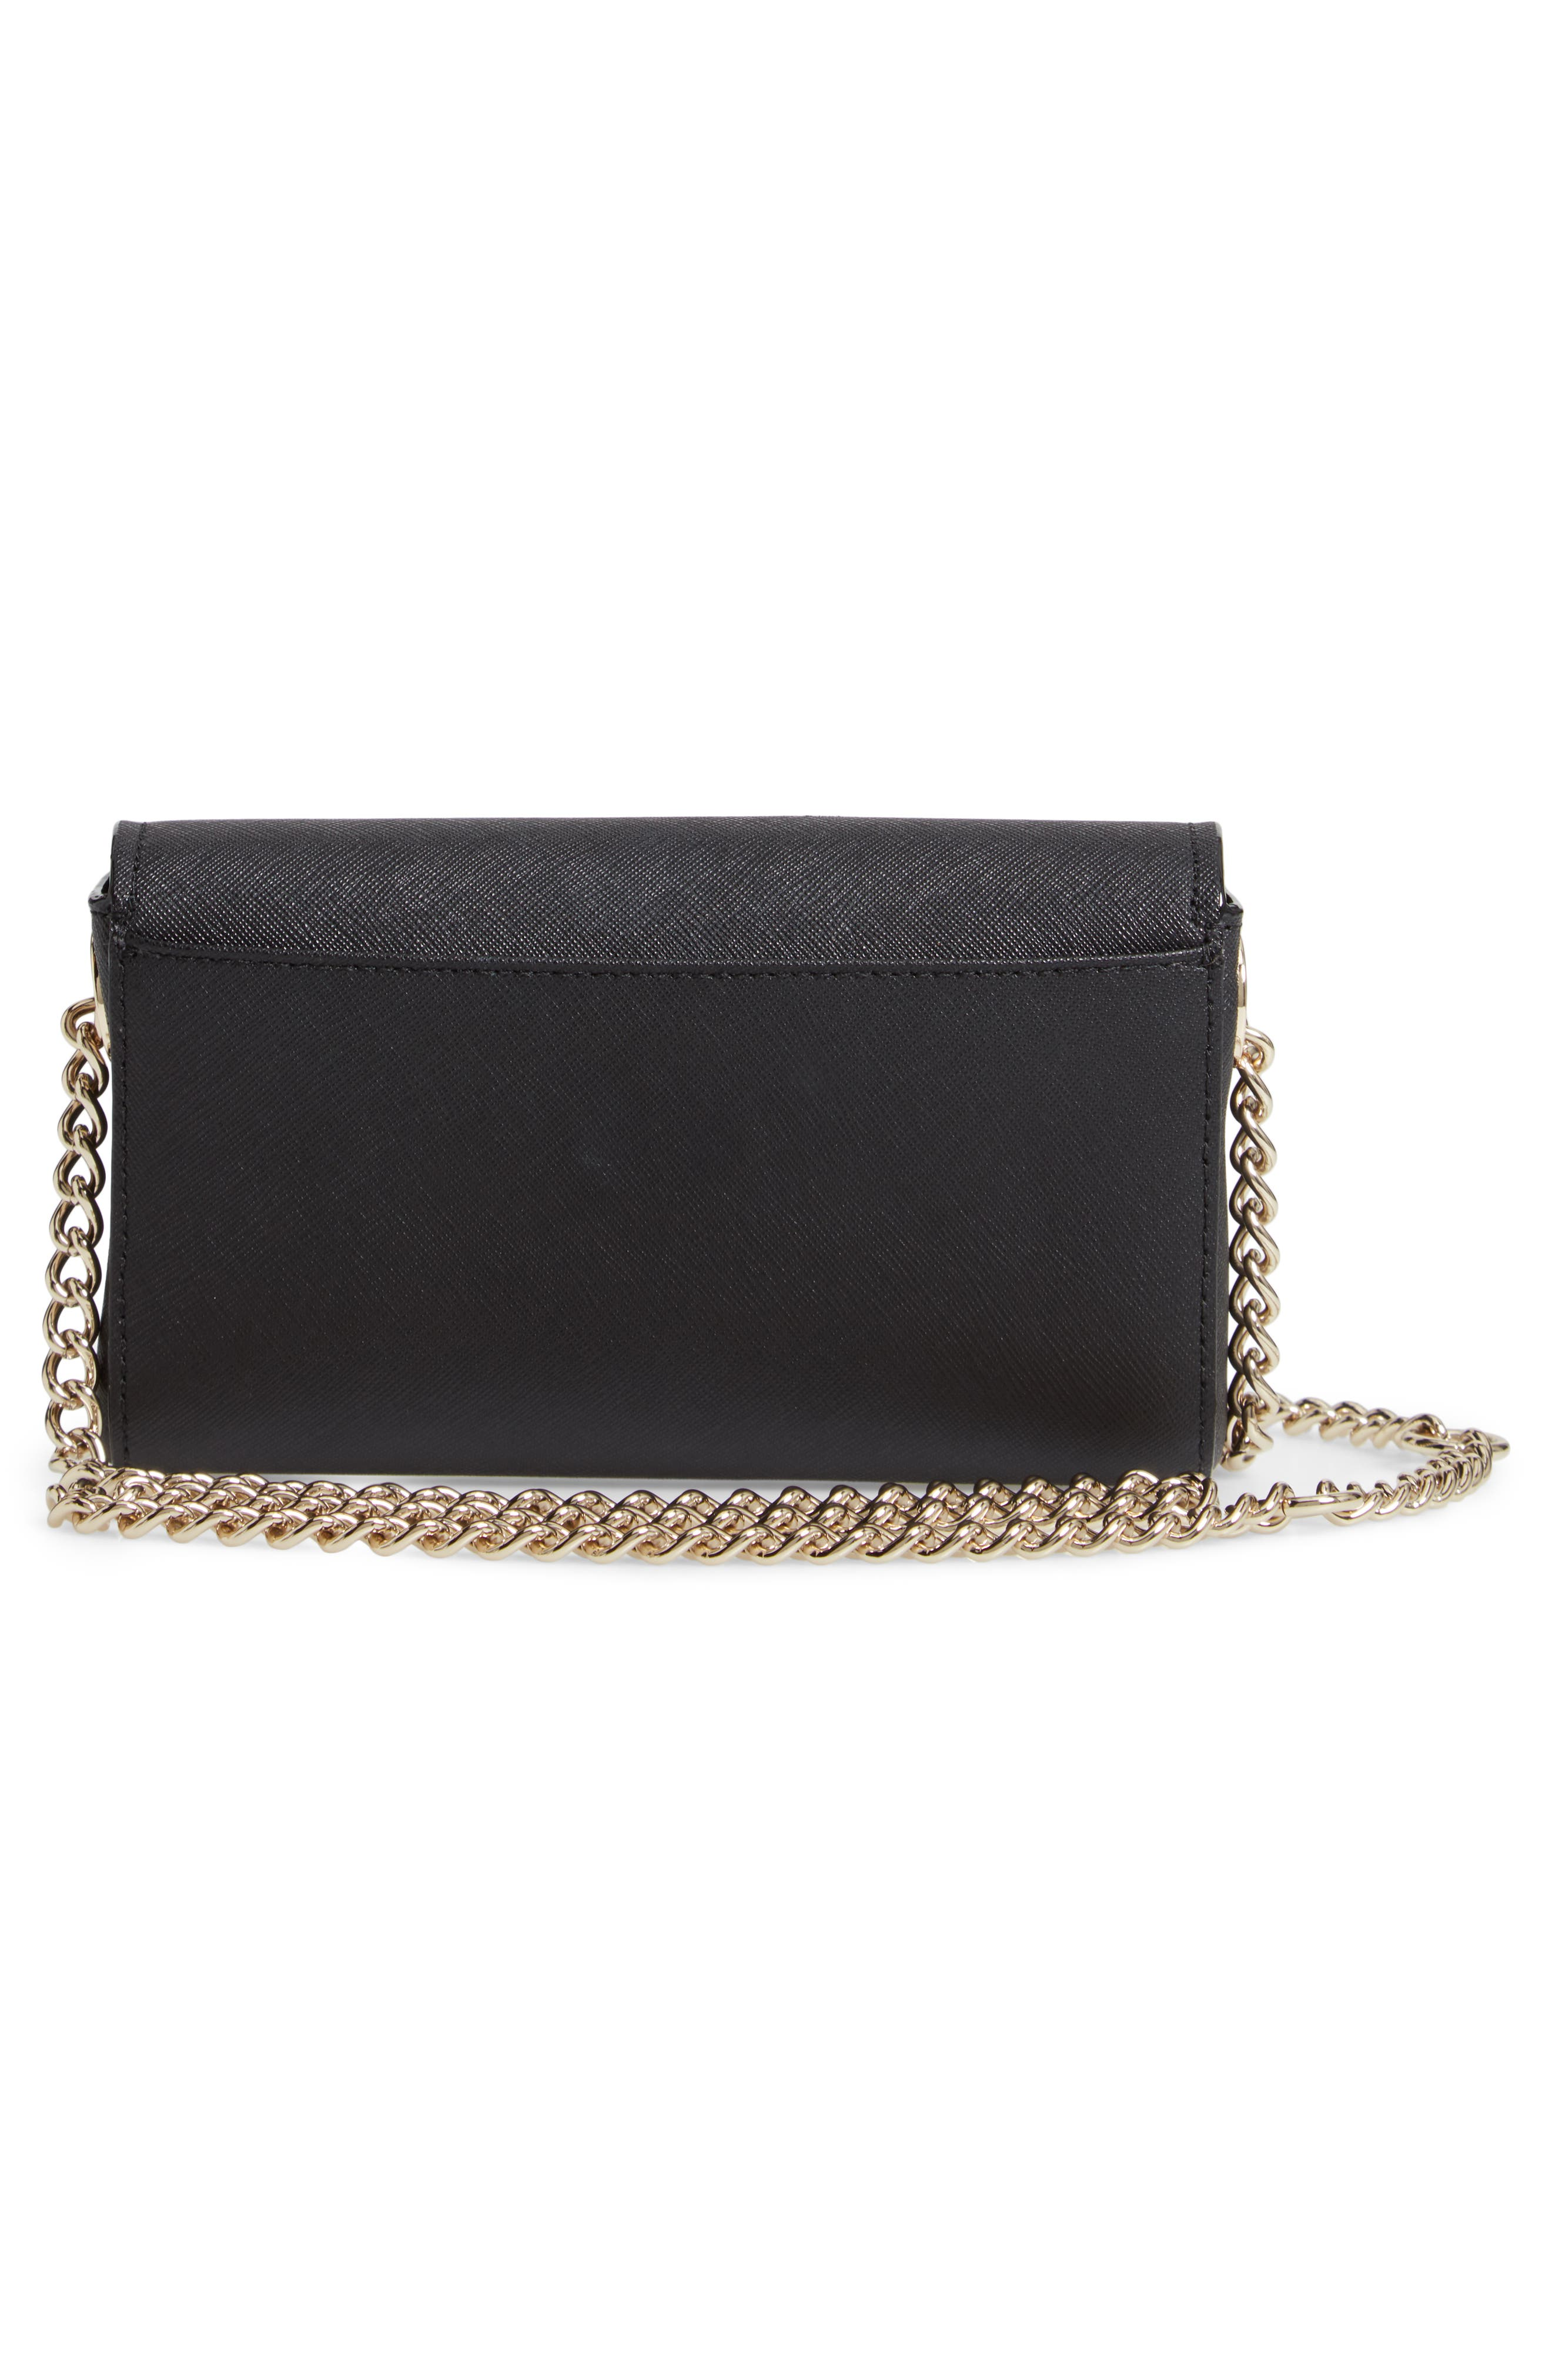 cameron street - delilah belt bag,                             Alternate thumbnail 4, color,                             BLACK